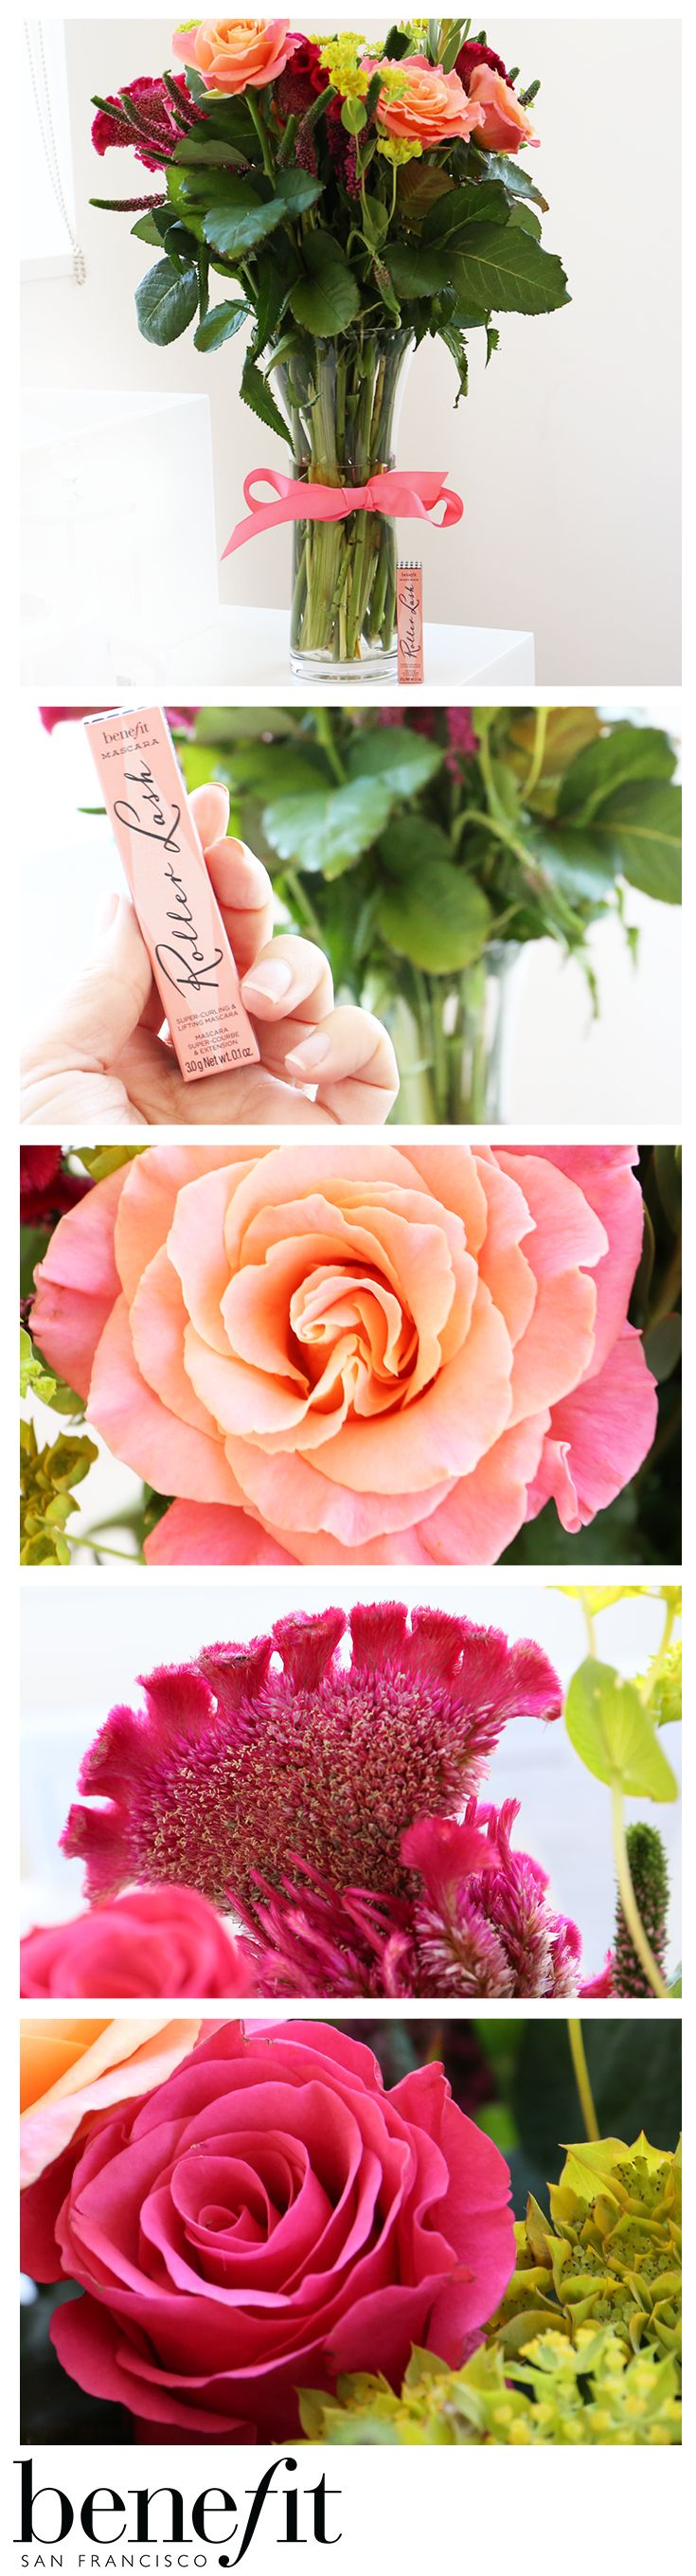 """The gorgeous """"Benebabe"""" bouquet, available exclusively from Bloom and Wild! Get yours straight through the letter box and DIY on your flower arranging, plus get a FREE mini roller lash xx"""